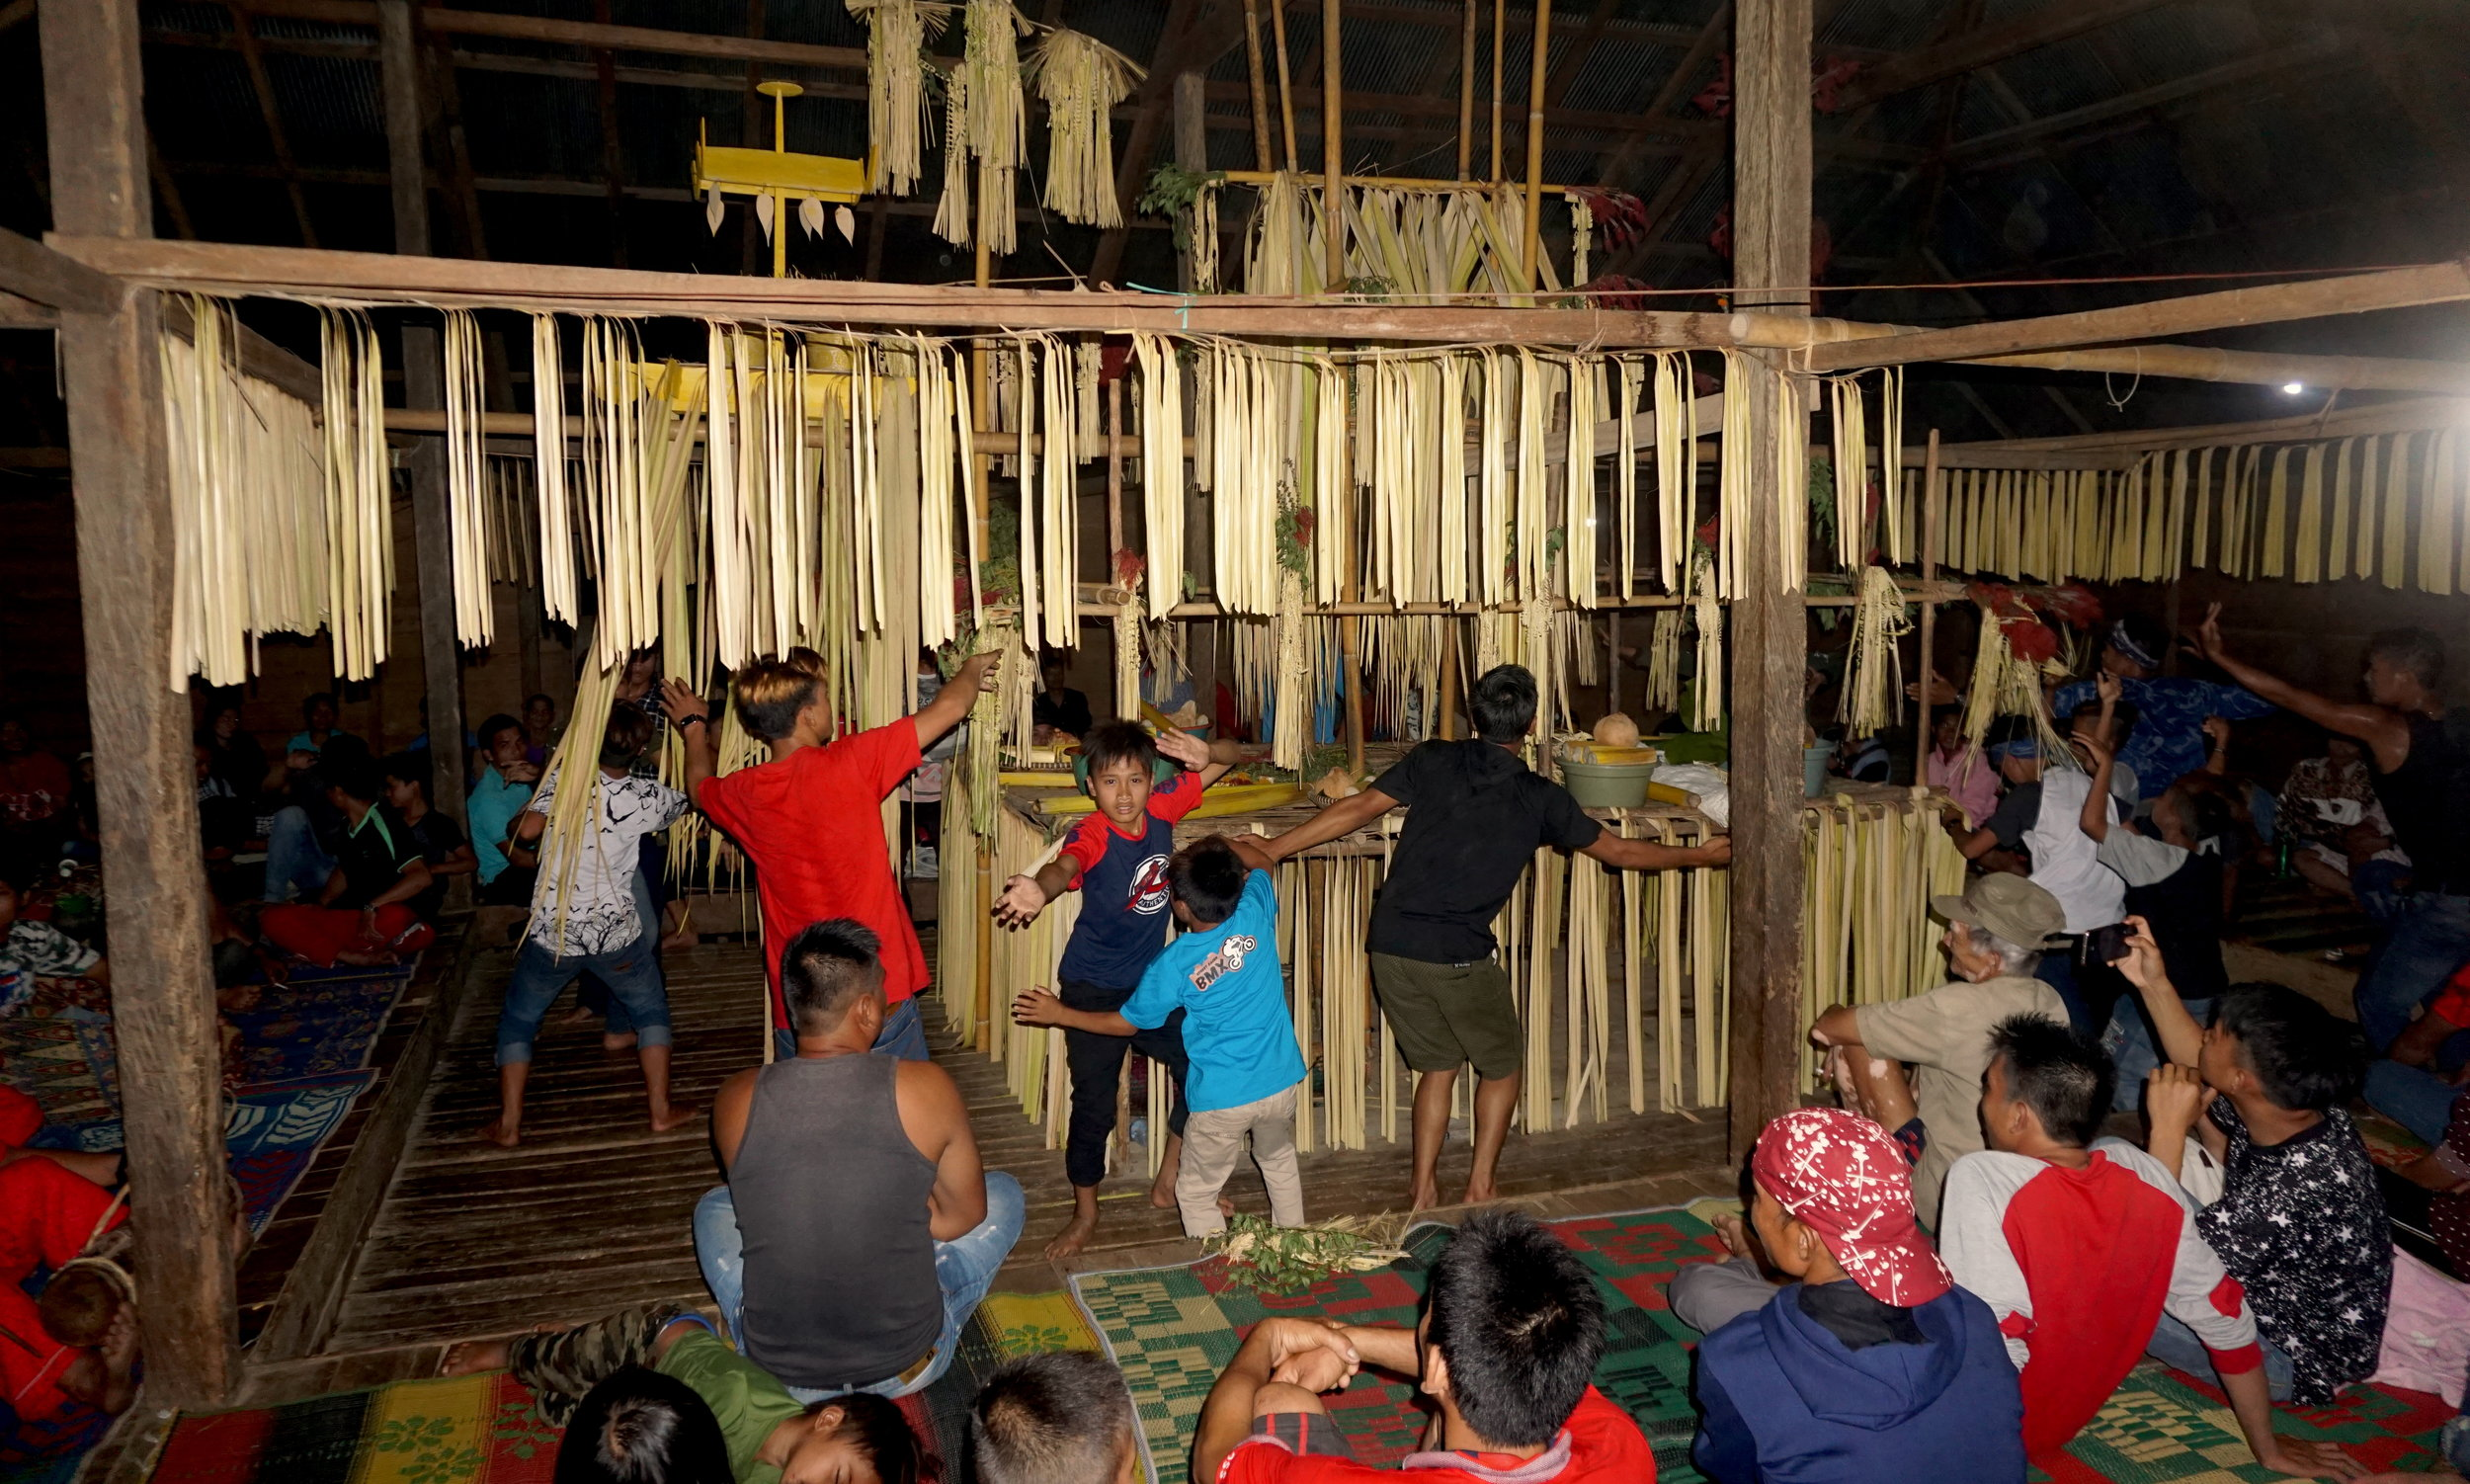 At a balian ritual in nearby Loksado, South Kalimantan.